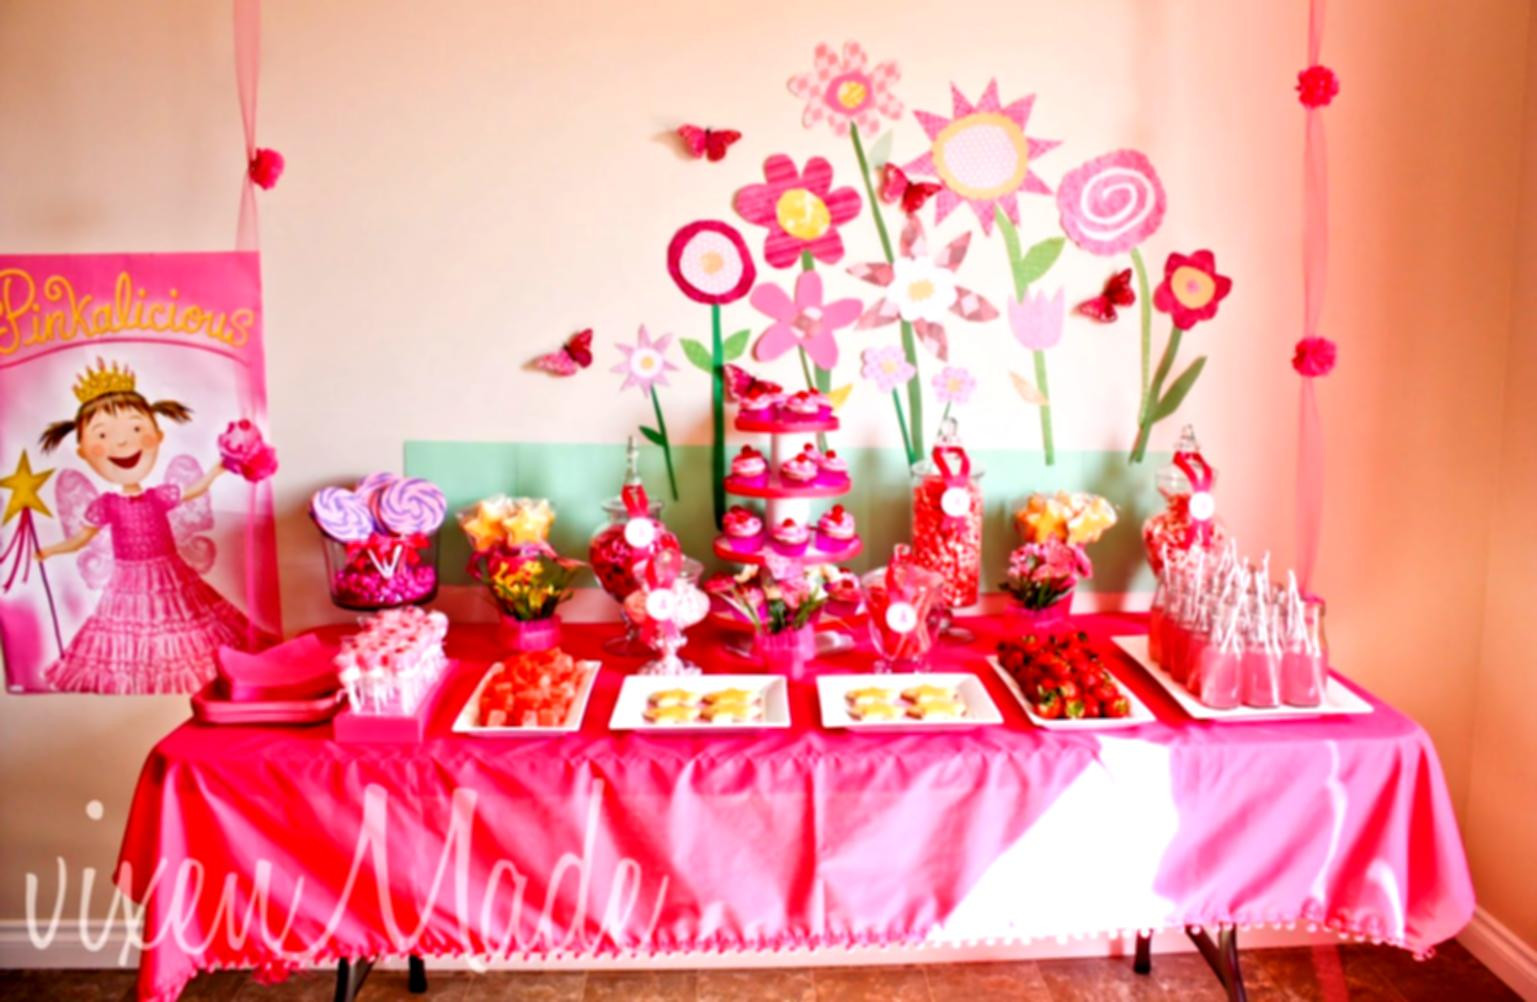 Best ideas about Birthday Party Ideas For Girls . Save or Pin 50 Sweet Girls Party Ideas Birthday Decoration For Teenage Now.